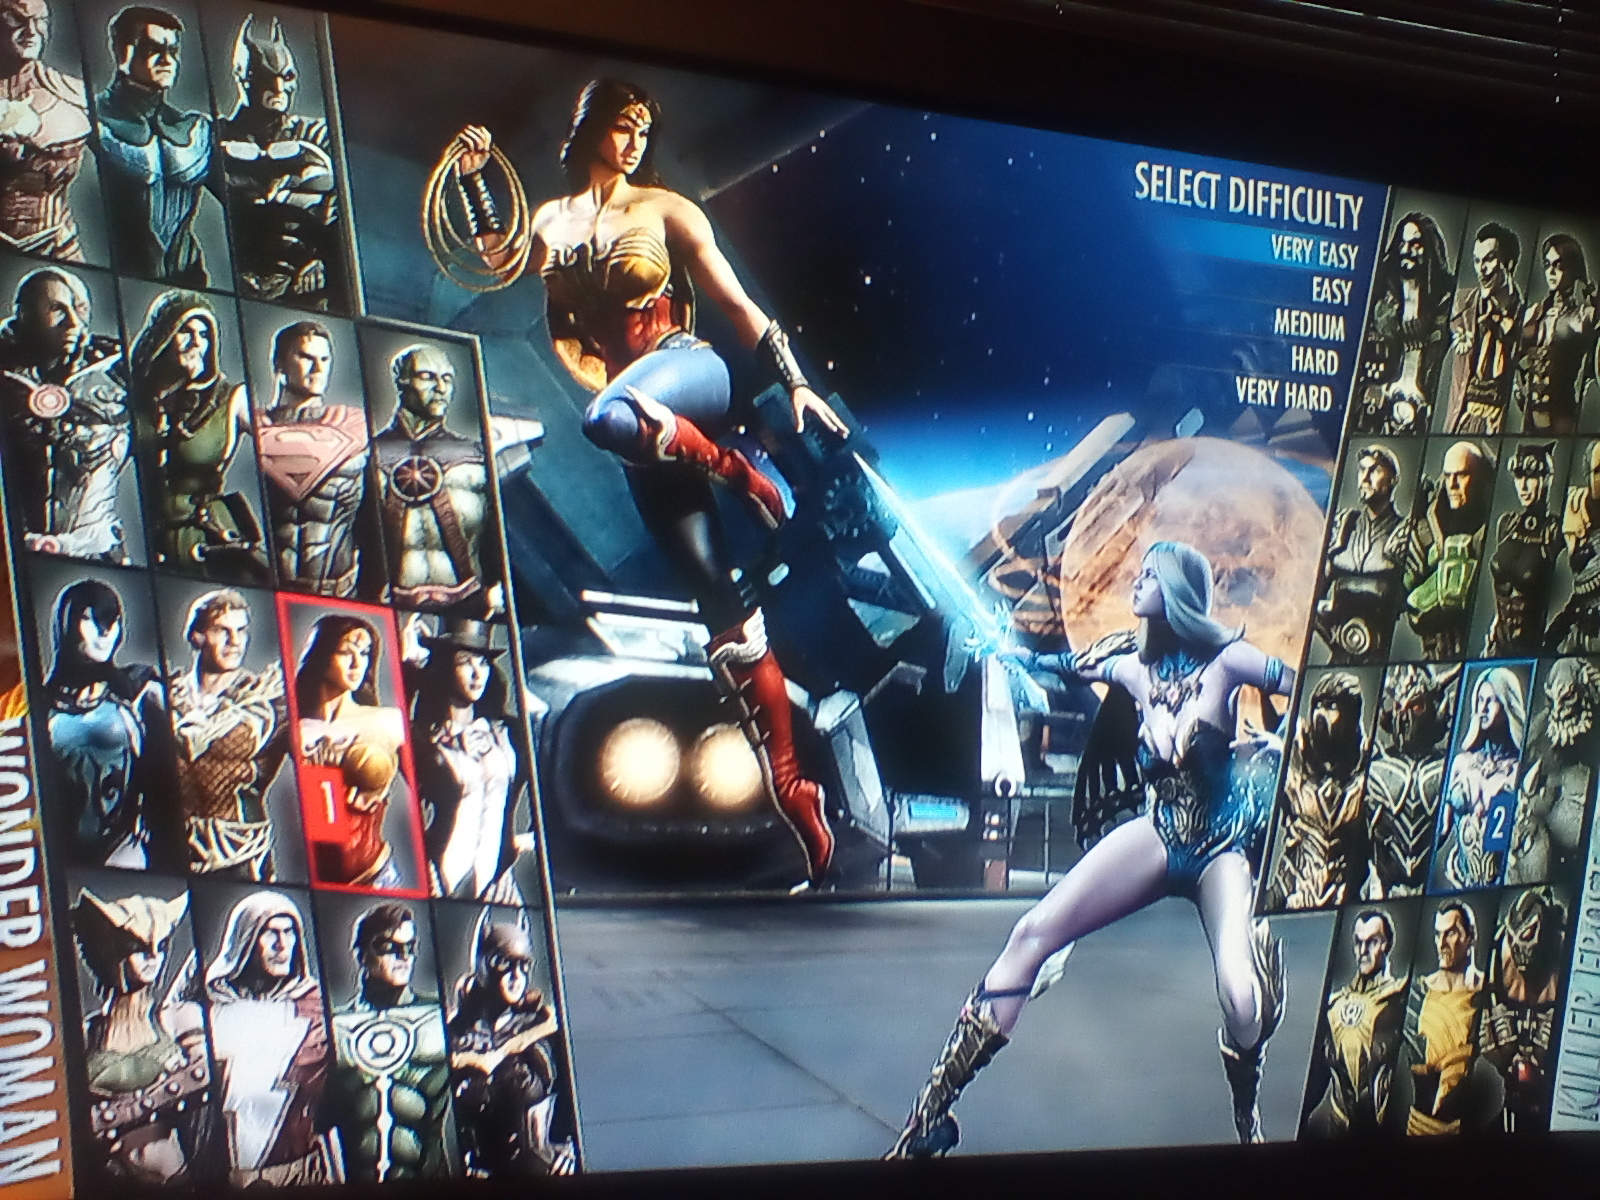 JML101582: Injustice: Gods Among Us: Ultimate Edition [Arcade] [Very Easy] (Playstation 3) 653 points on 2020-03-16 21:15:51